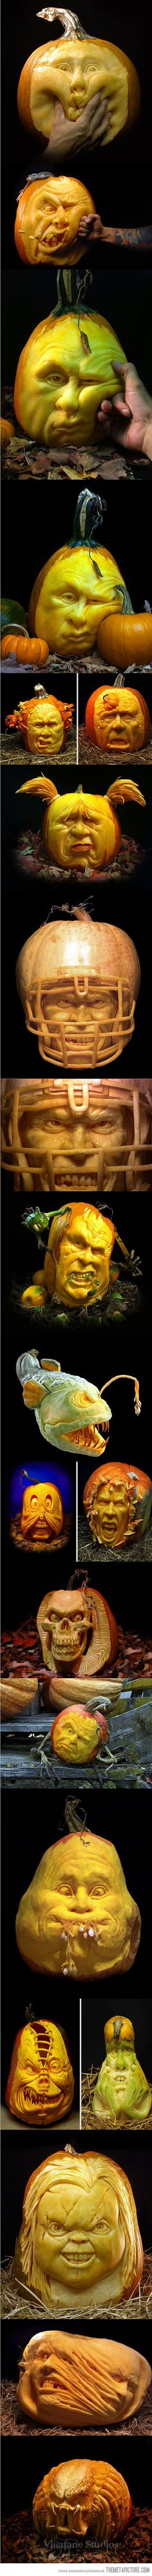 Amazing creative Pumpkin carvings!